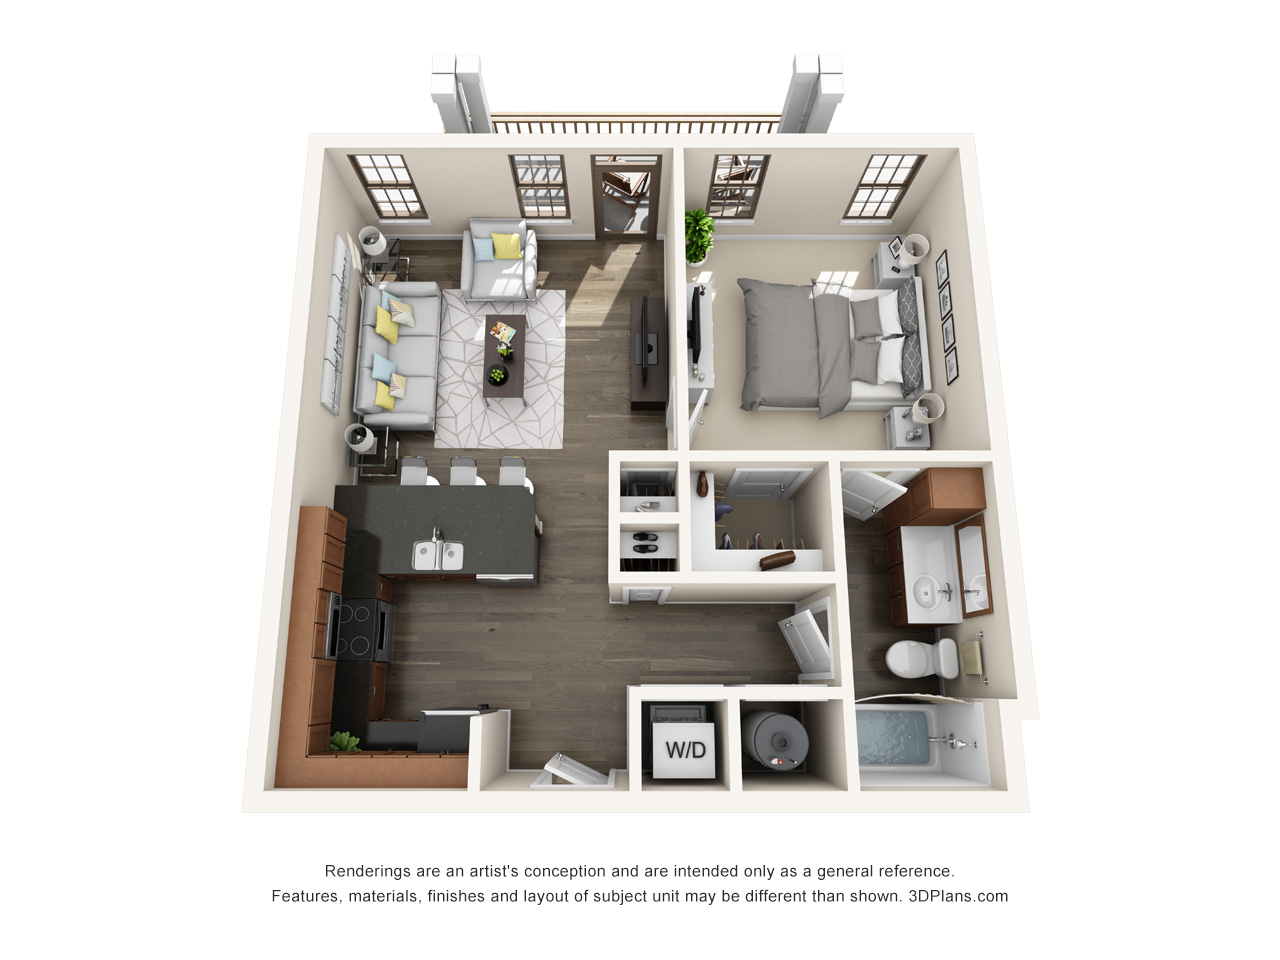 The Lexington Dillworth 1 bedroom/1 bath THE DILWORTH floor plan